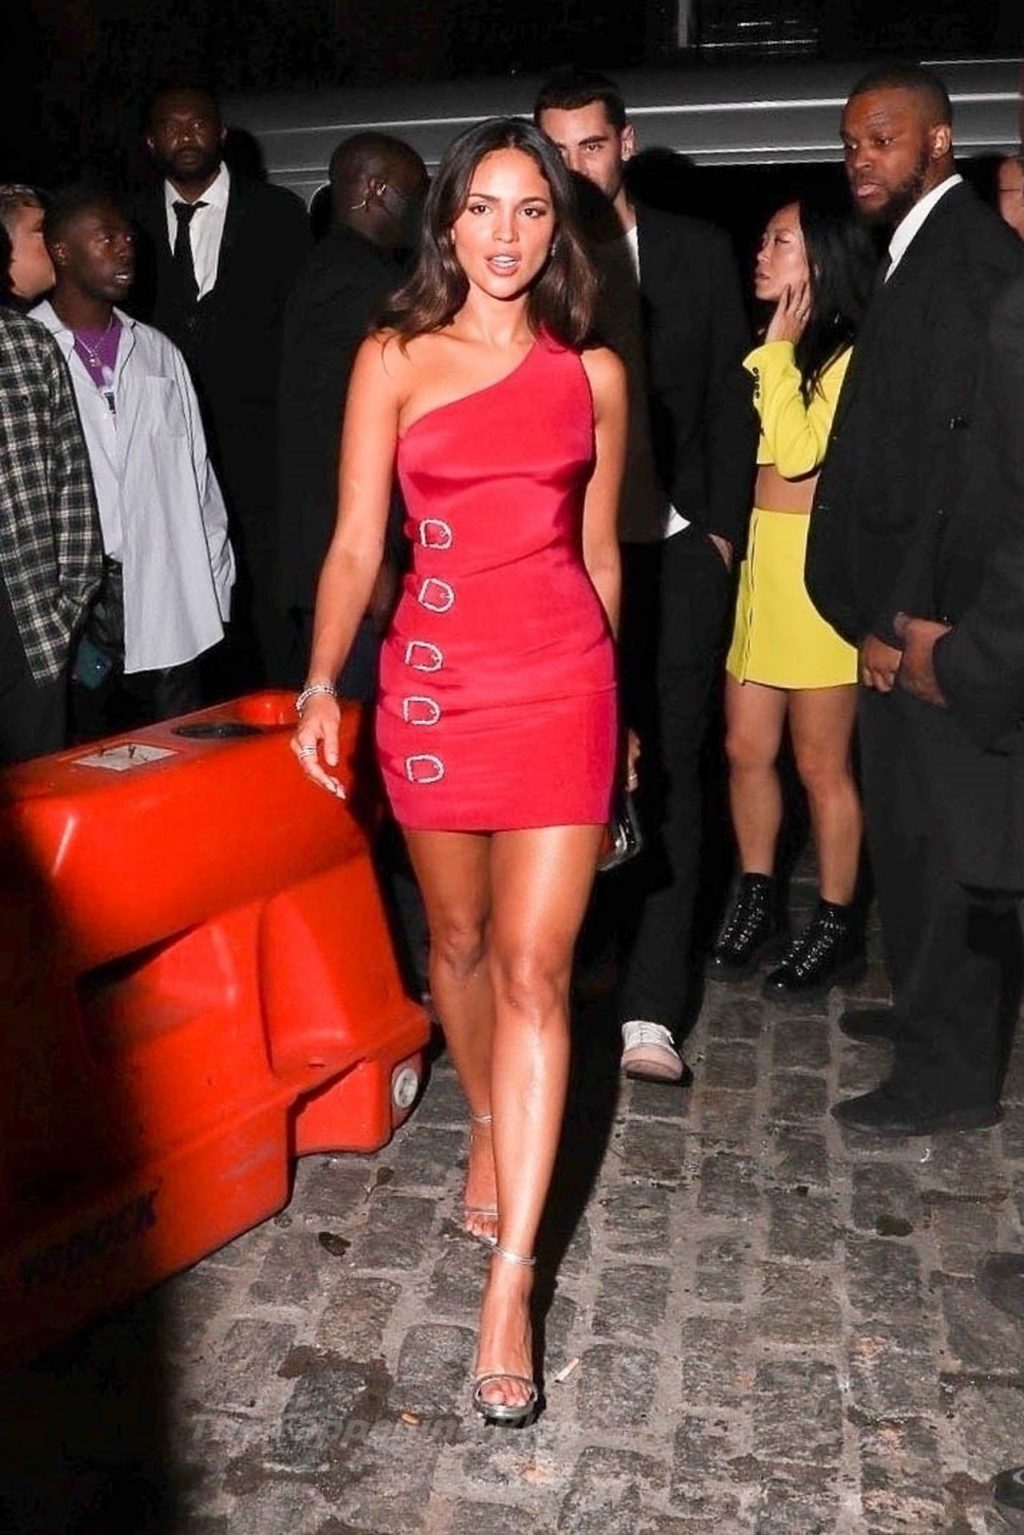 Eiza Gonzalez Flaunts Her Sexy Legs As She Attends Rihanna's Met Gala After-Party in New York (33 Photos)